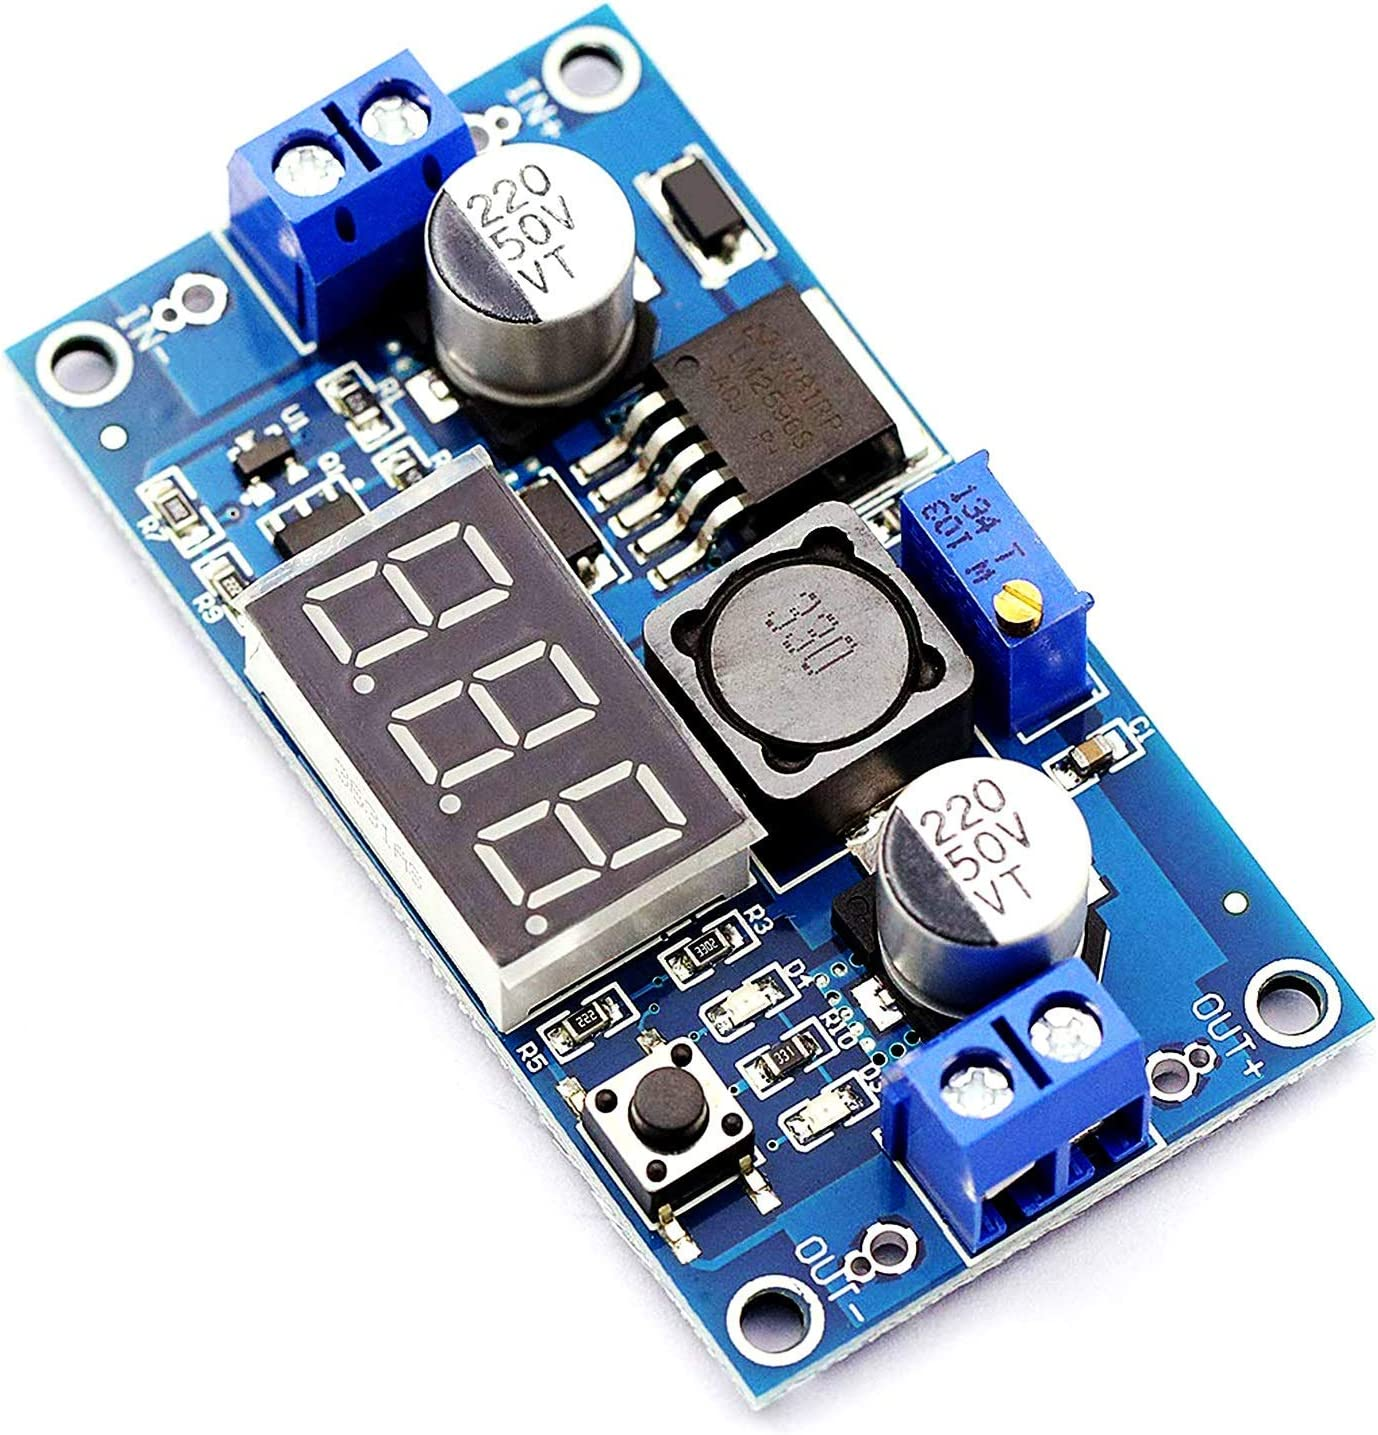 LIMEI-ZEN LM2596 DC-DC Adjustable Buck Module With Digital Voltmeter Display LM2596S Regulated Power Supply Converter Module 4.0~40V To 1.25~37V Power Transformer With LED Display Spot Steuermodul Pow